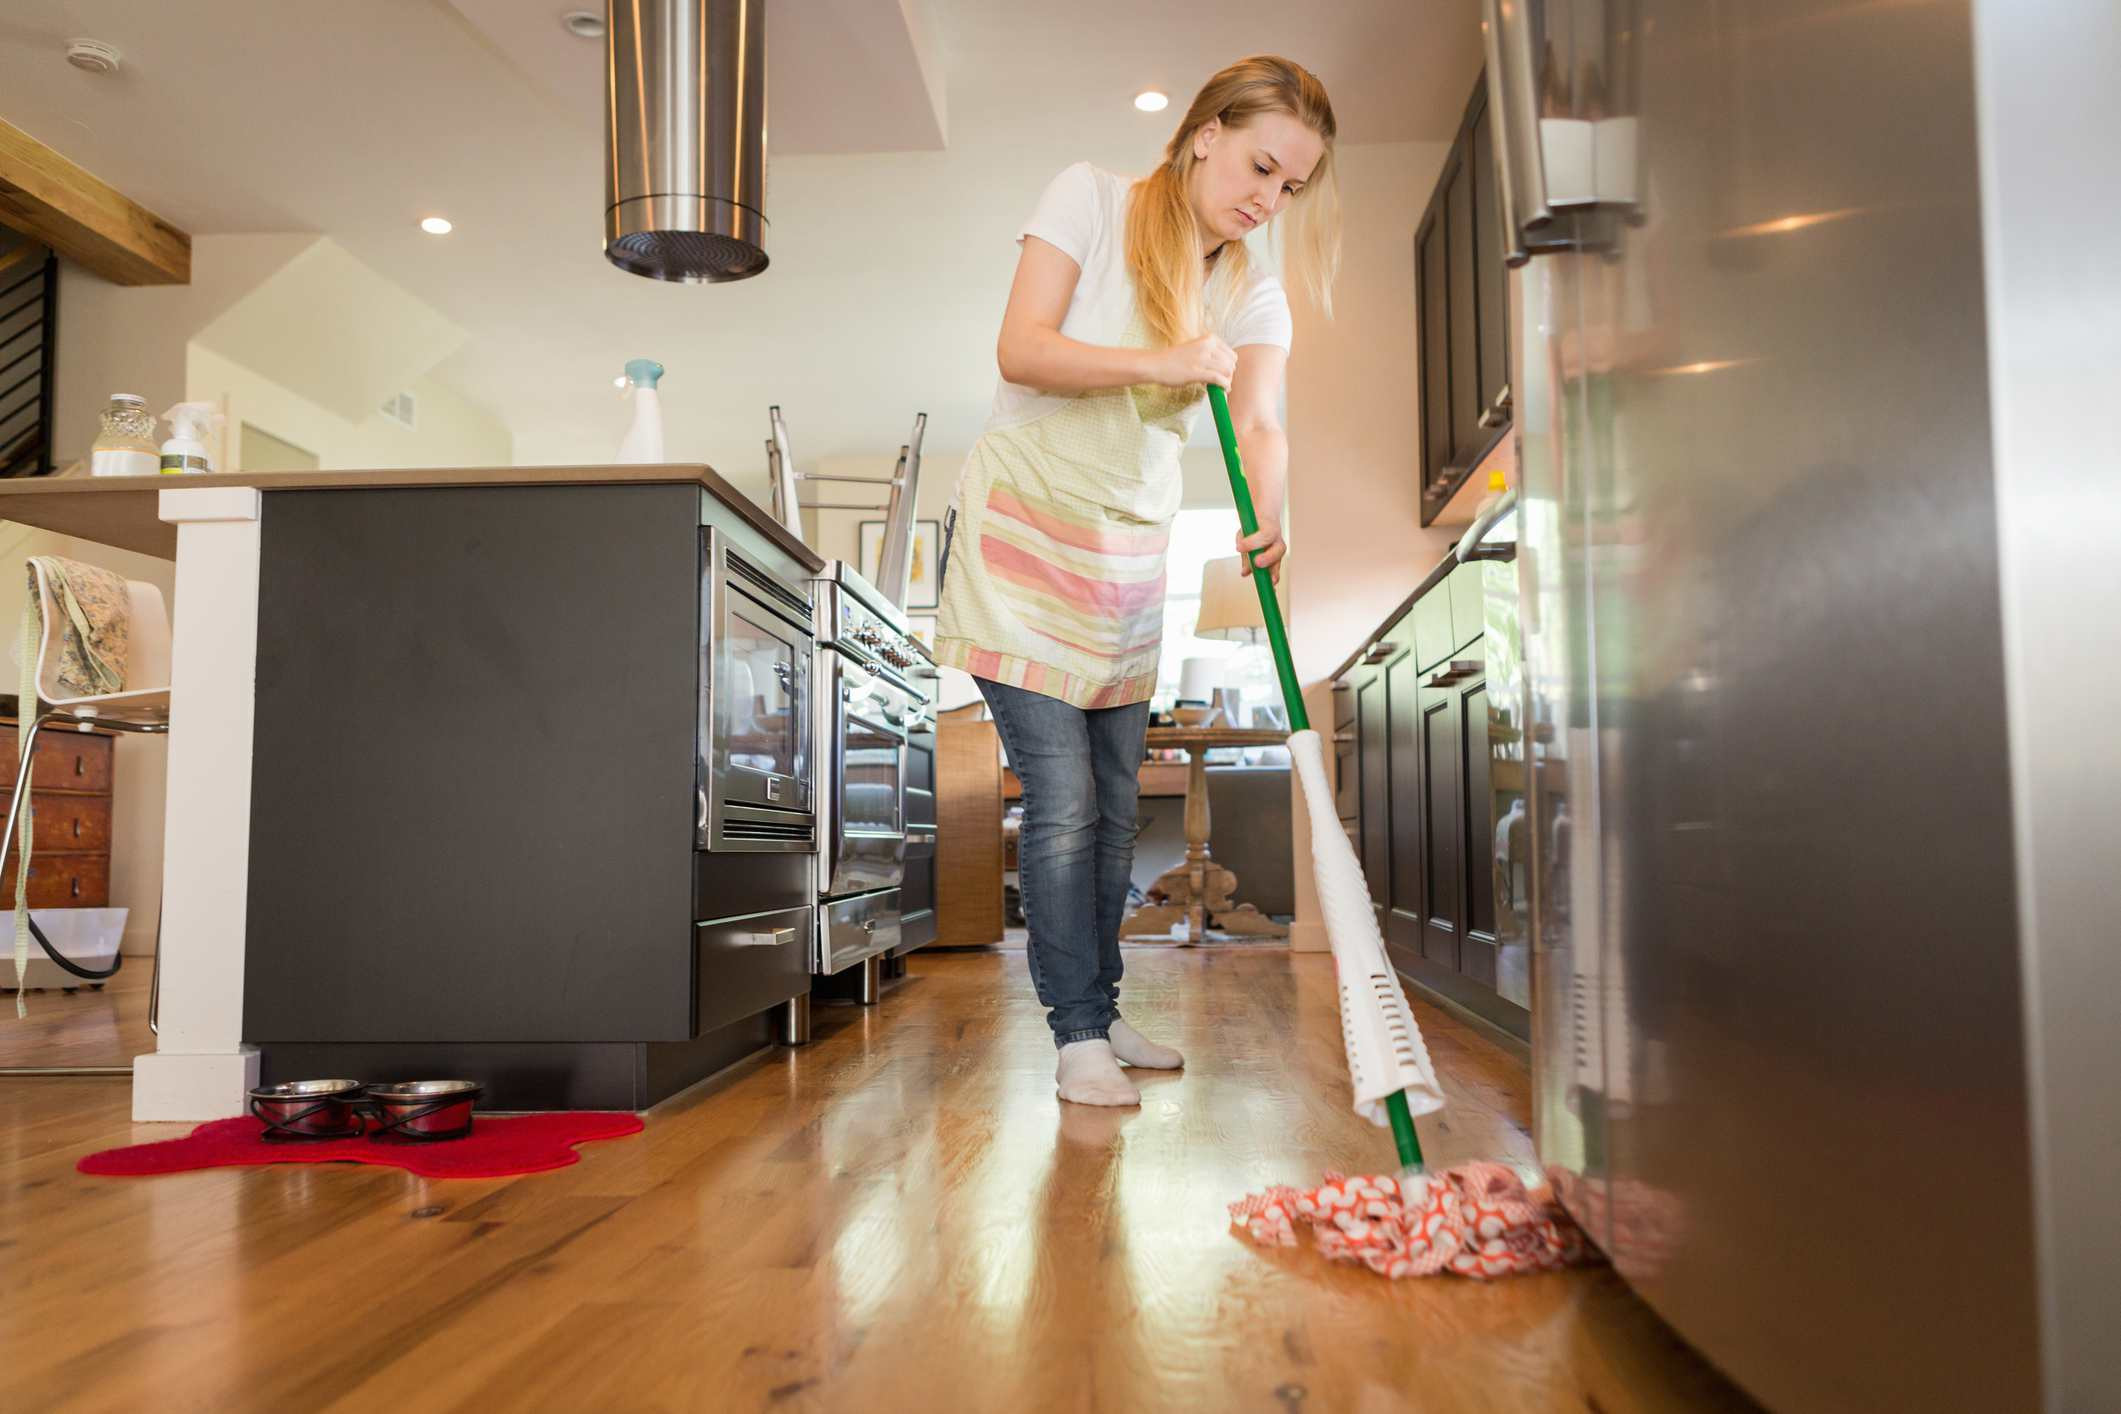 can you clean hardwood floors with vinegar and water of 9 laminate floor cleaning mistakes and how to fix them for a woman mopping the floor